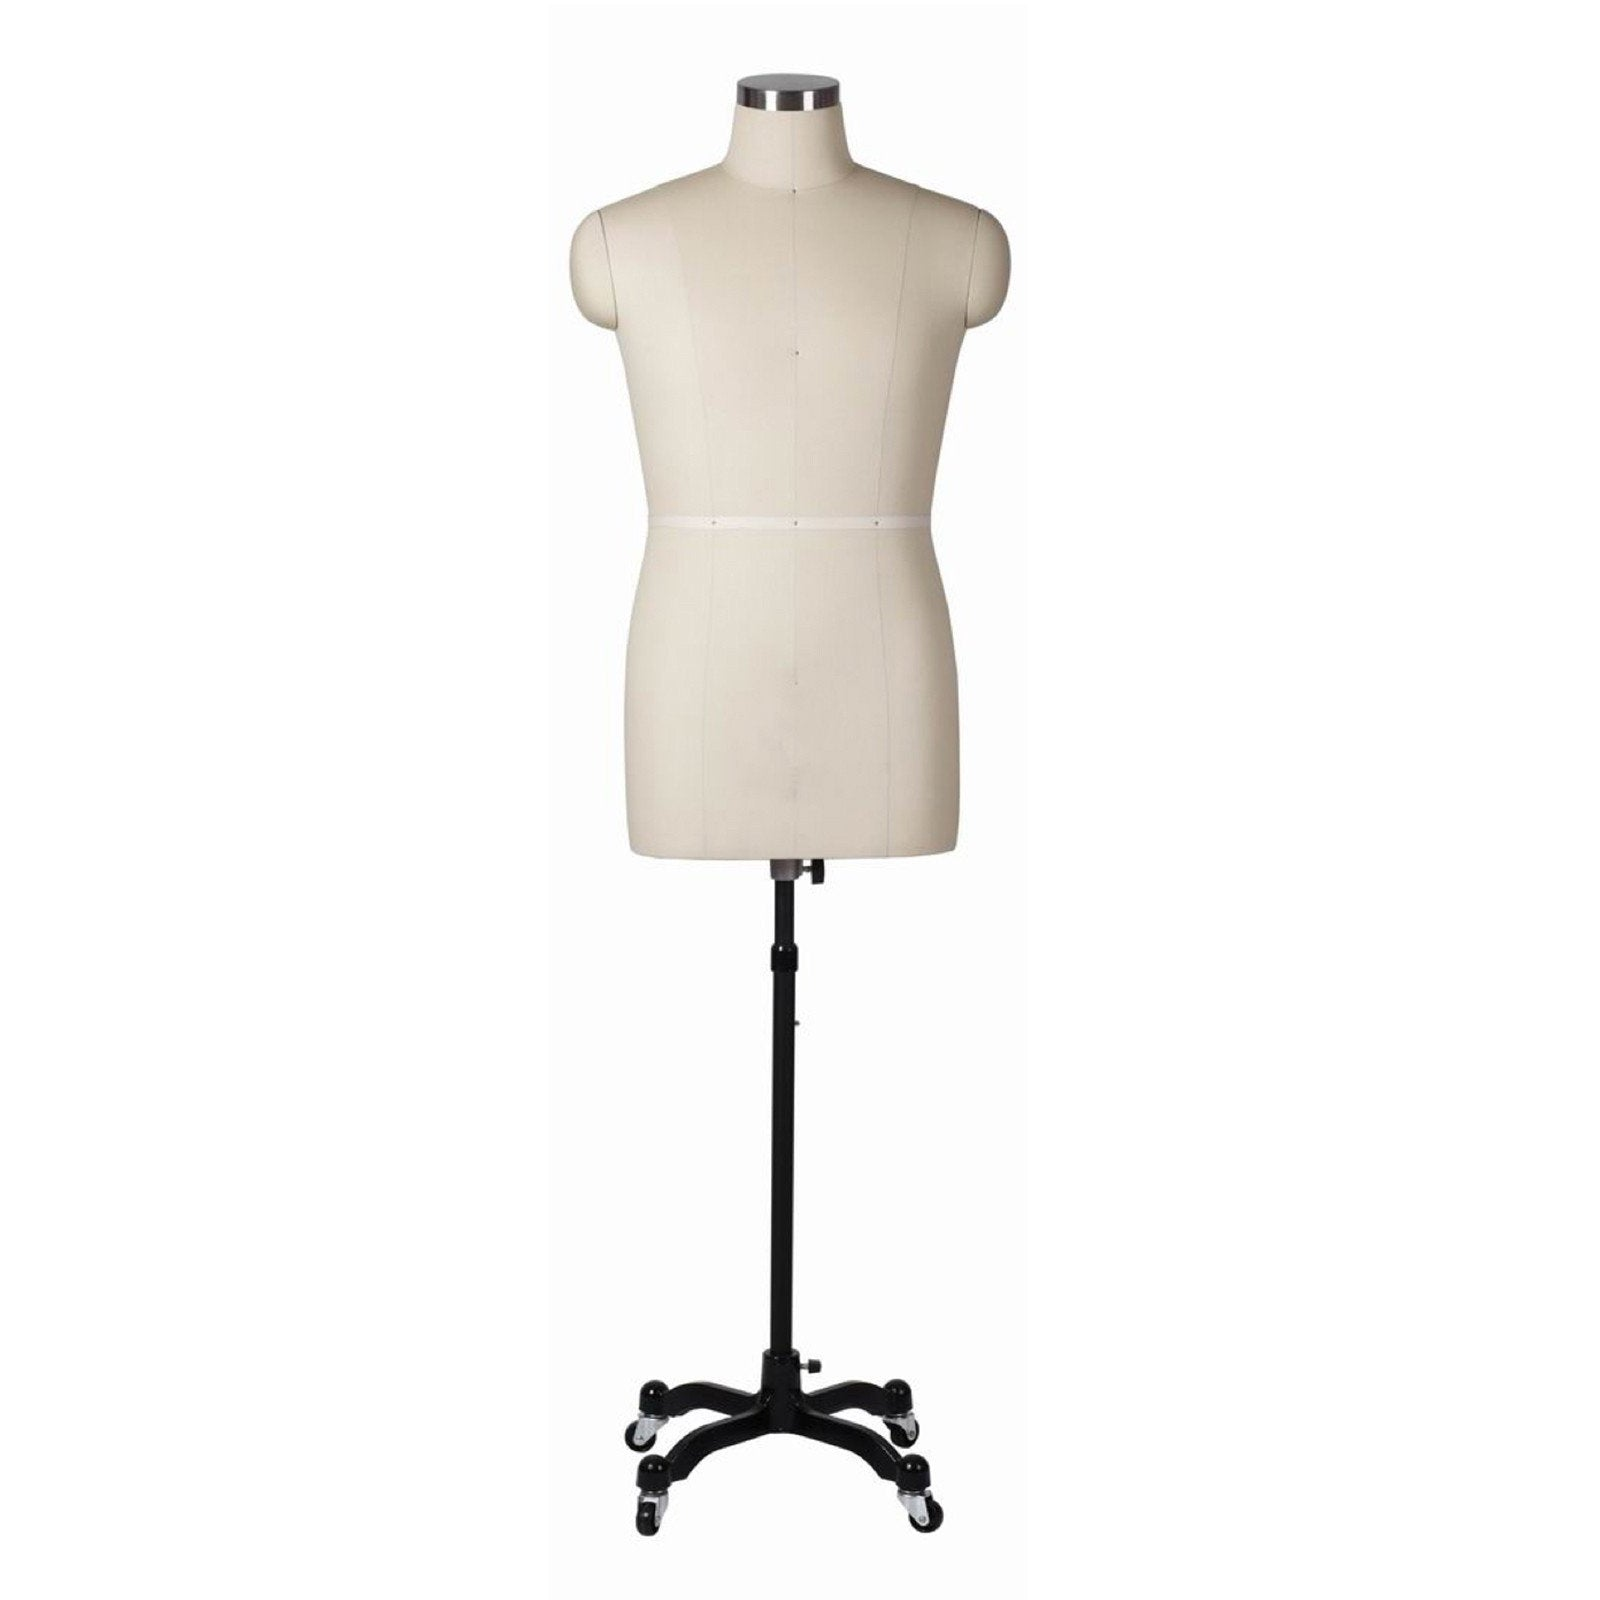 Charmant Male Professional Dress Form With Removable Shoulders ...